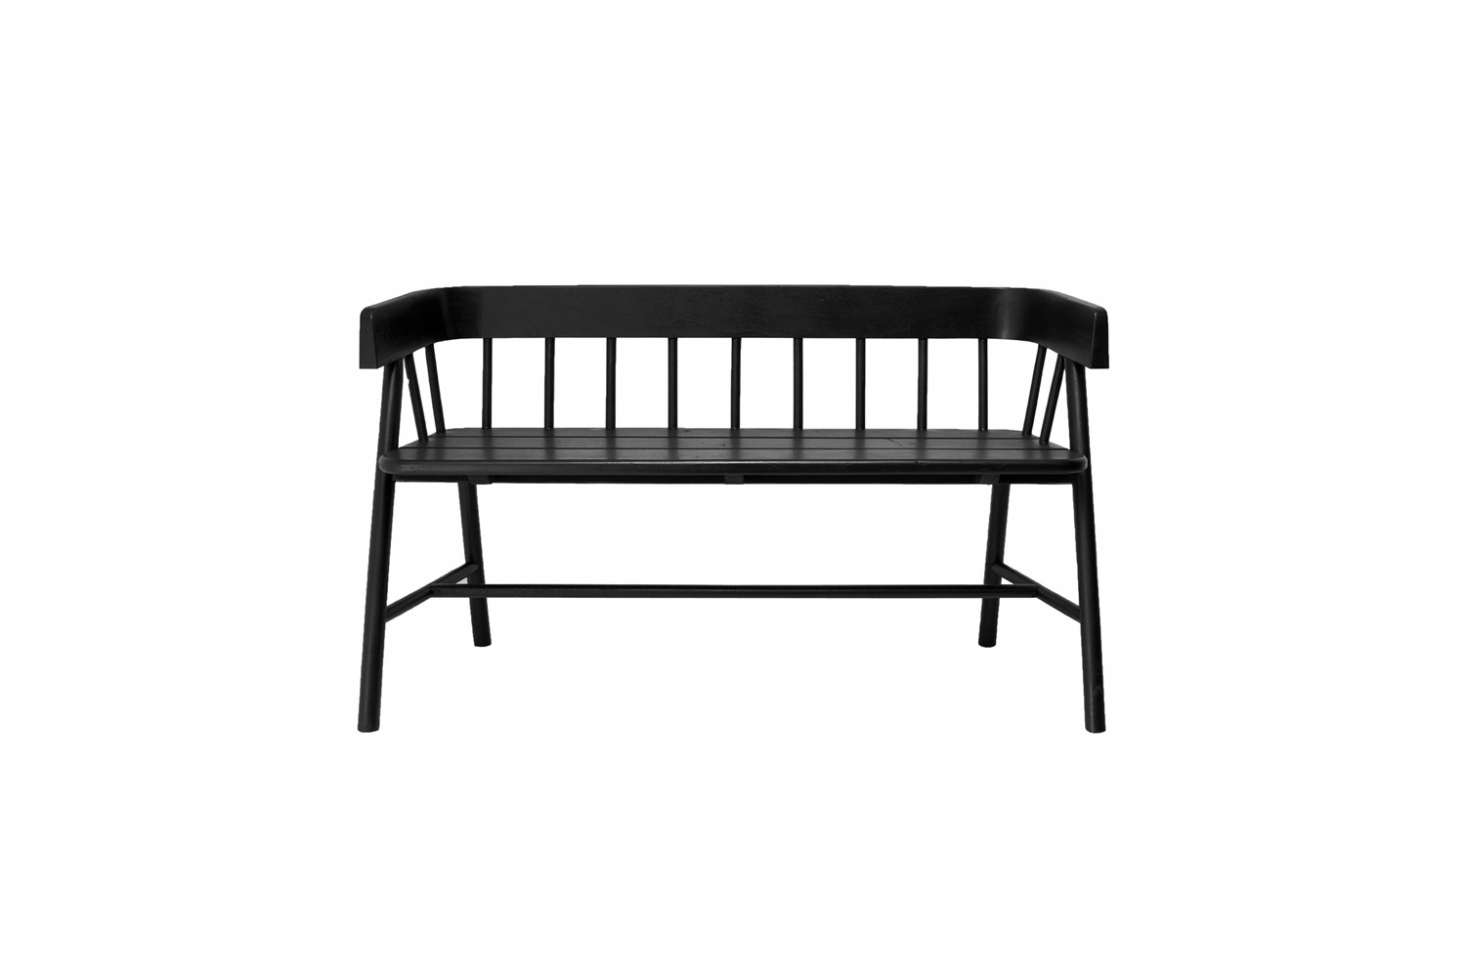 The Rowen & Wren Byron Black Bench is made of black painted teak; £772.